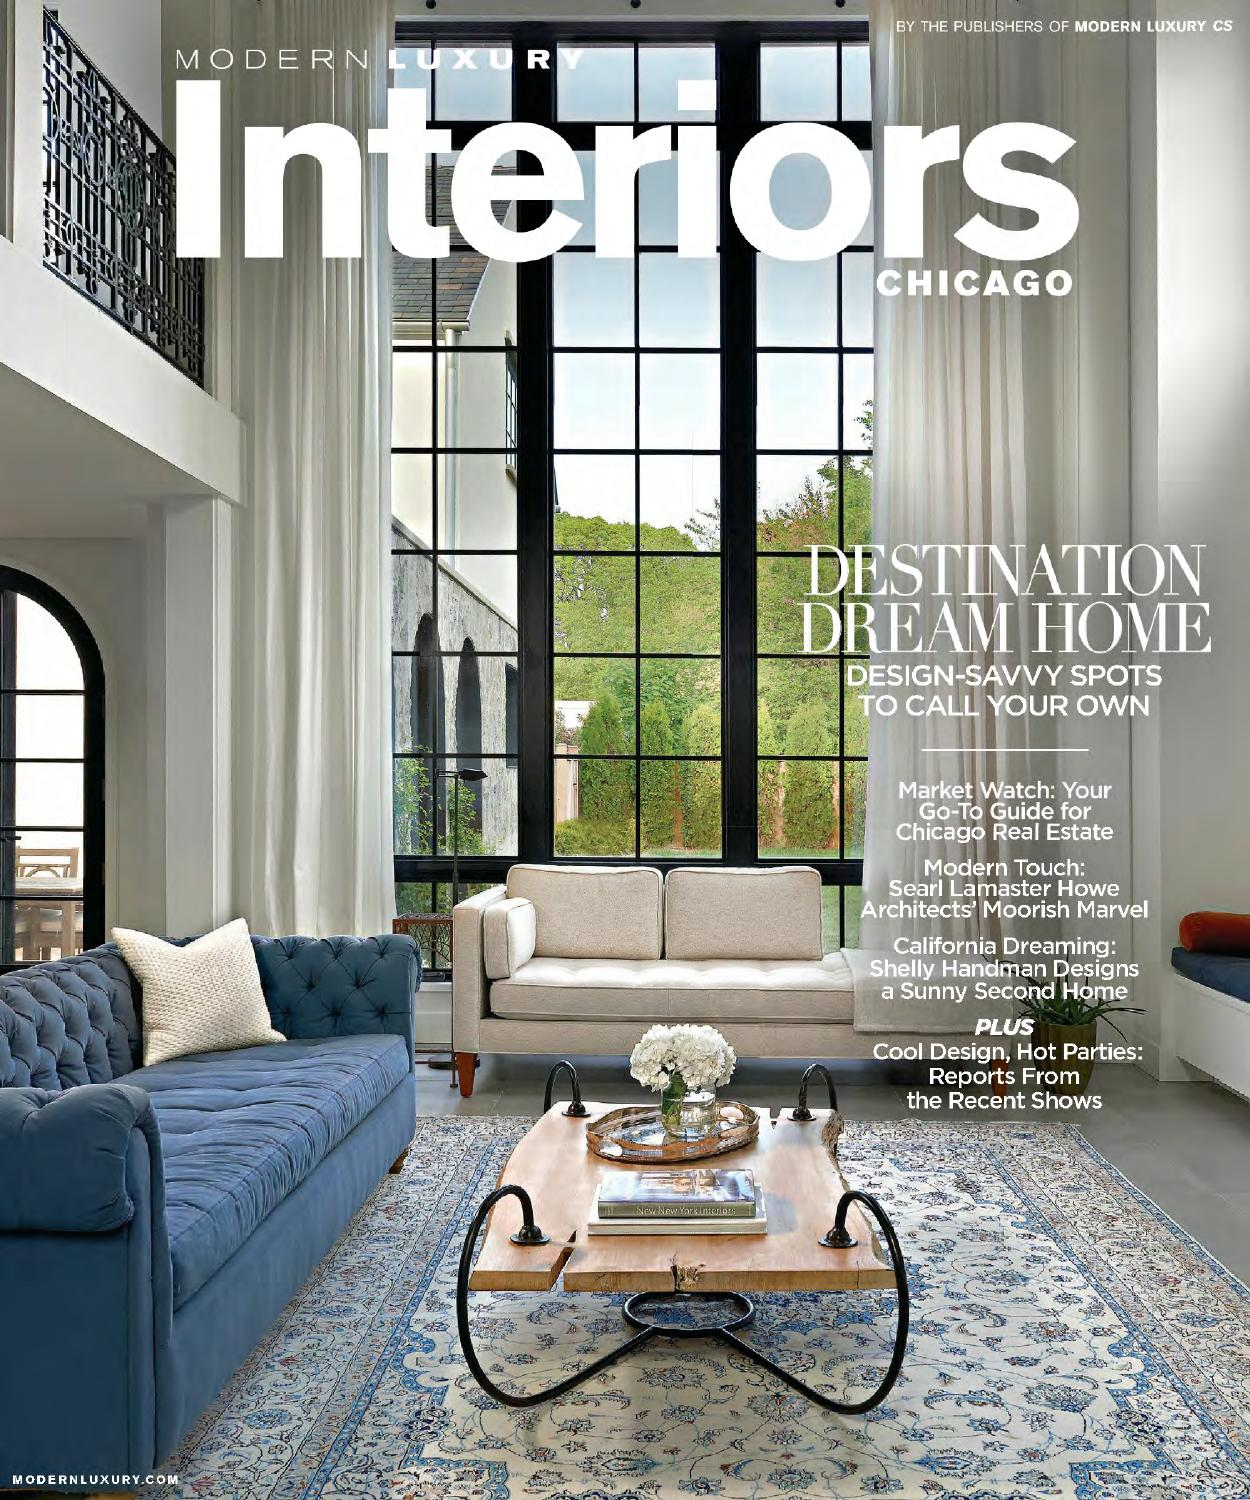 Modern Luxury Interiors: Modern Luxury Interiors Chicago Summer 2015 By Coupon